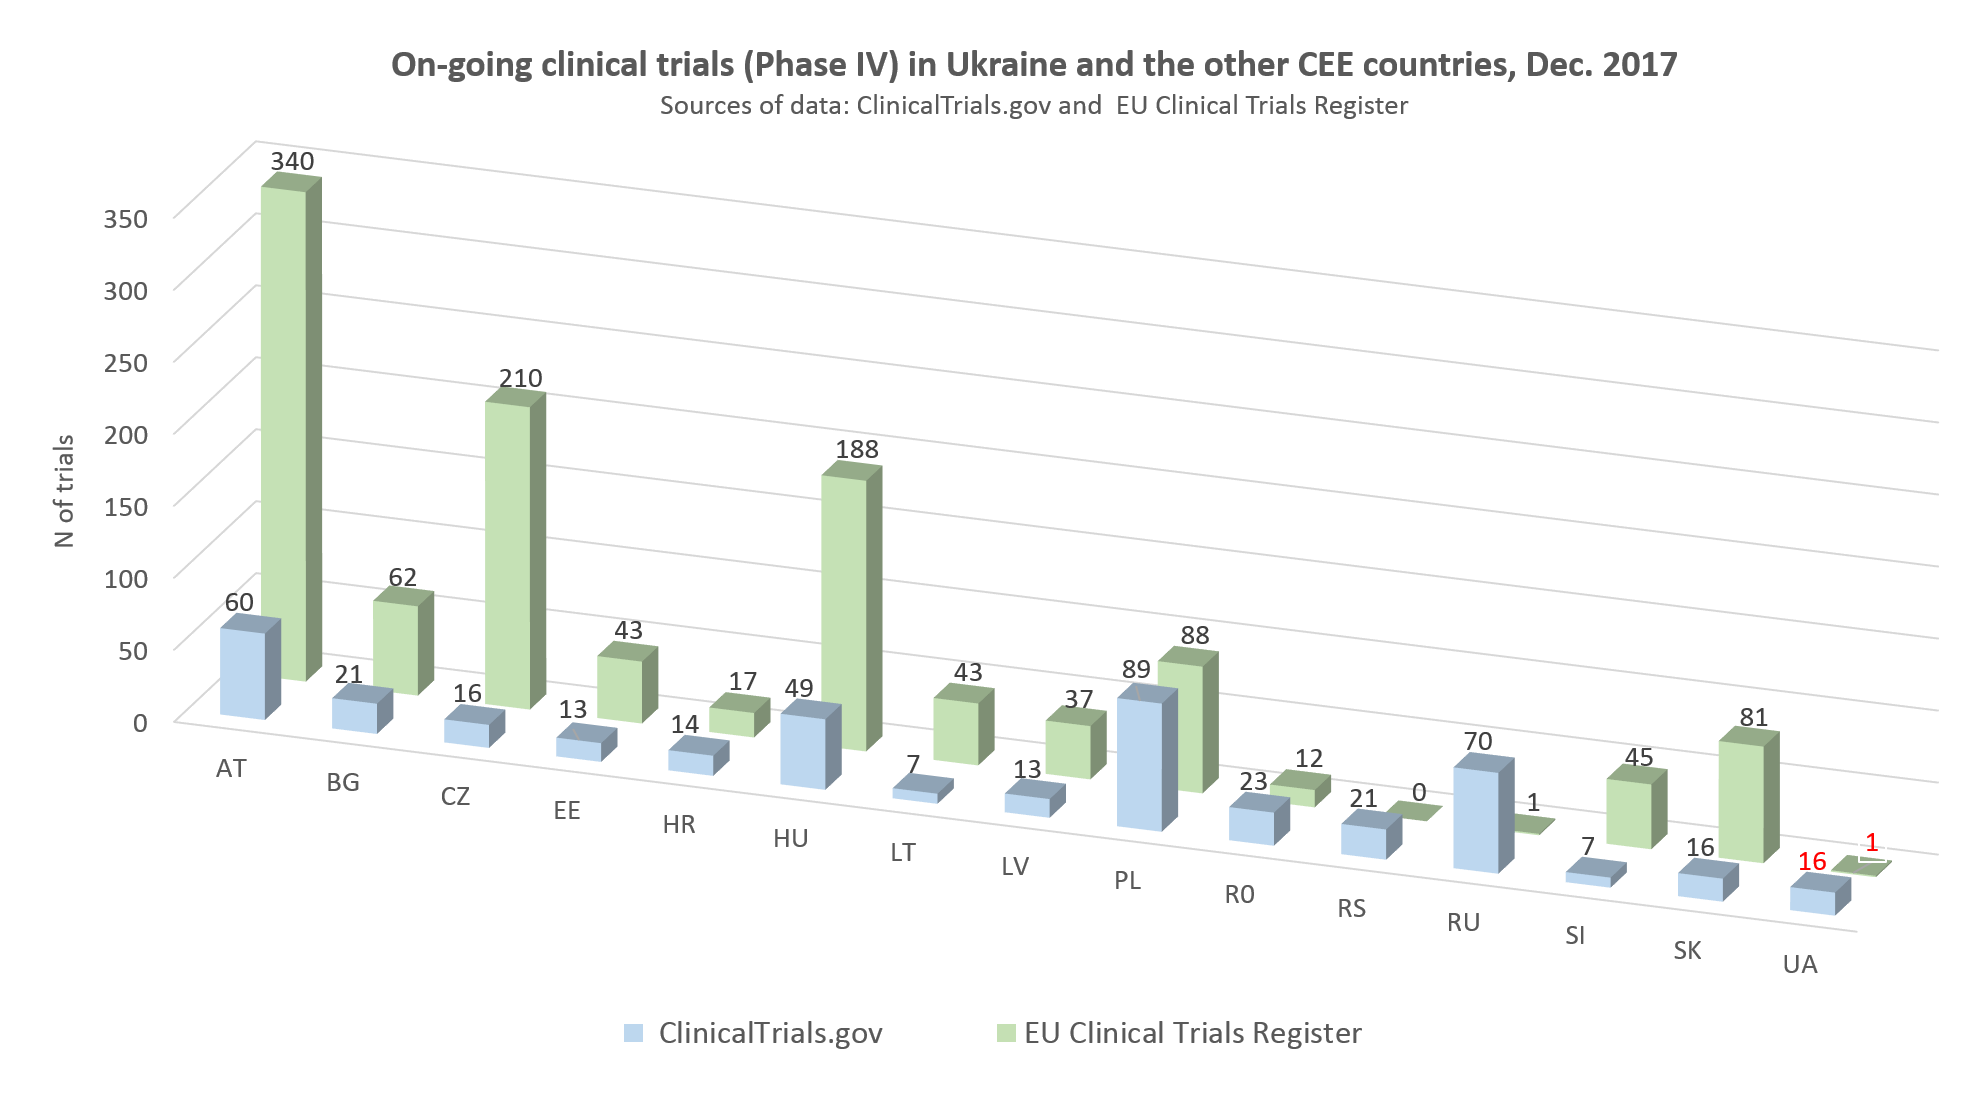 On-going clinical trials of phase IV in Ukraine and other CEE countries, December 2017